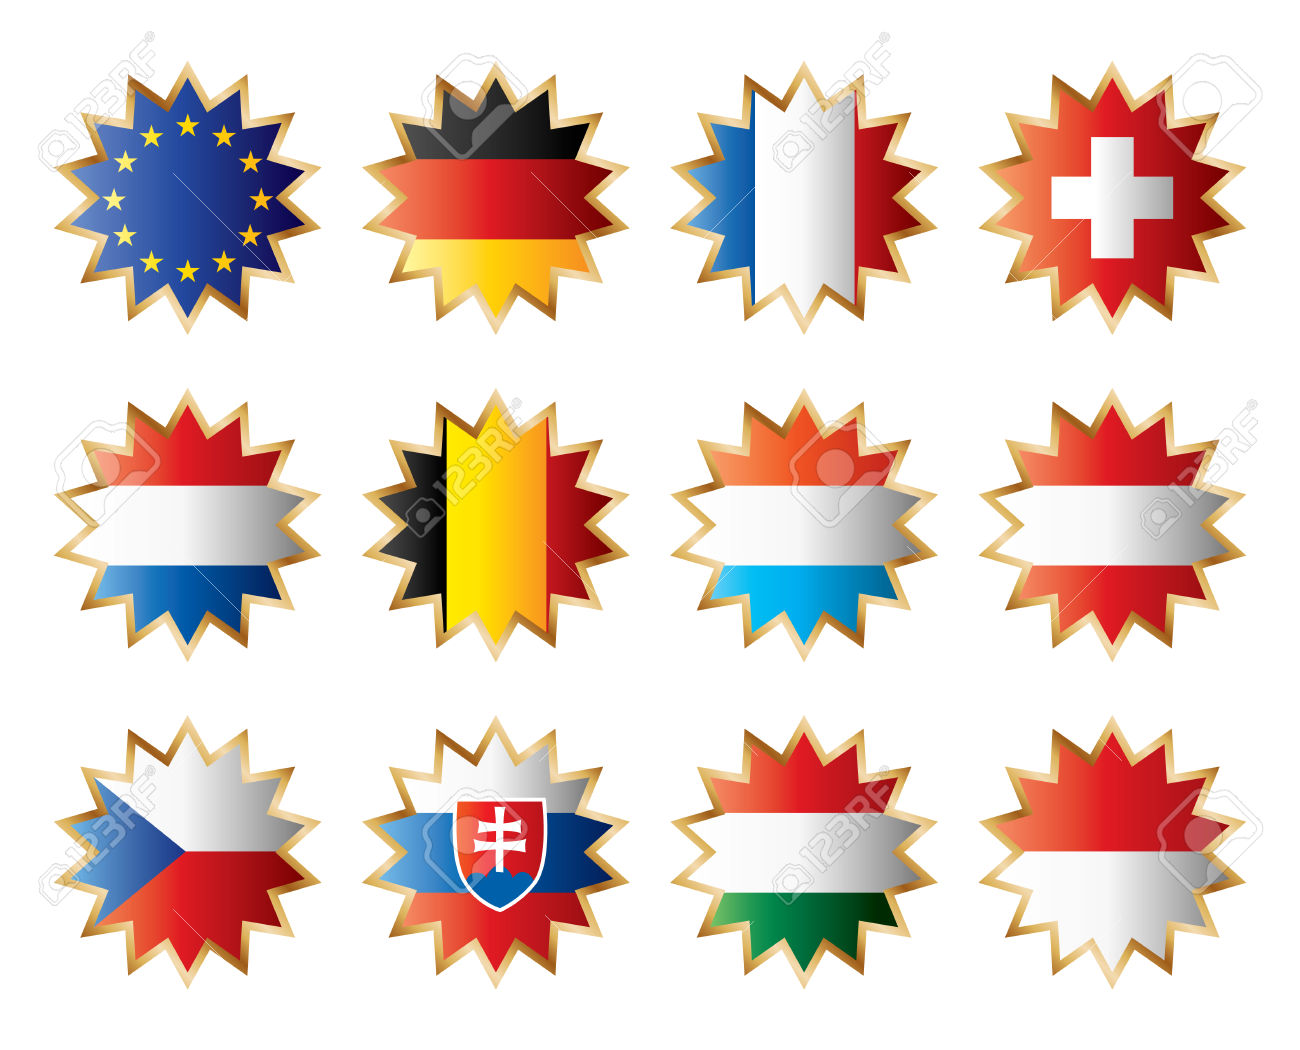 Star Flags Central Europe Separated Layers With Country Name